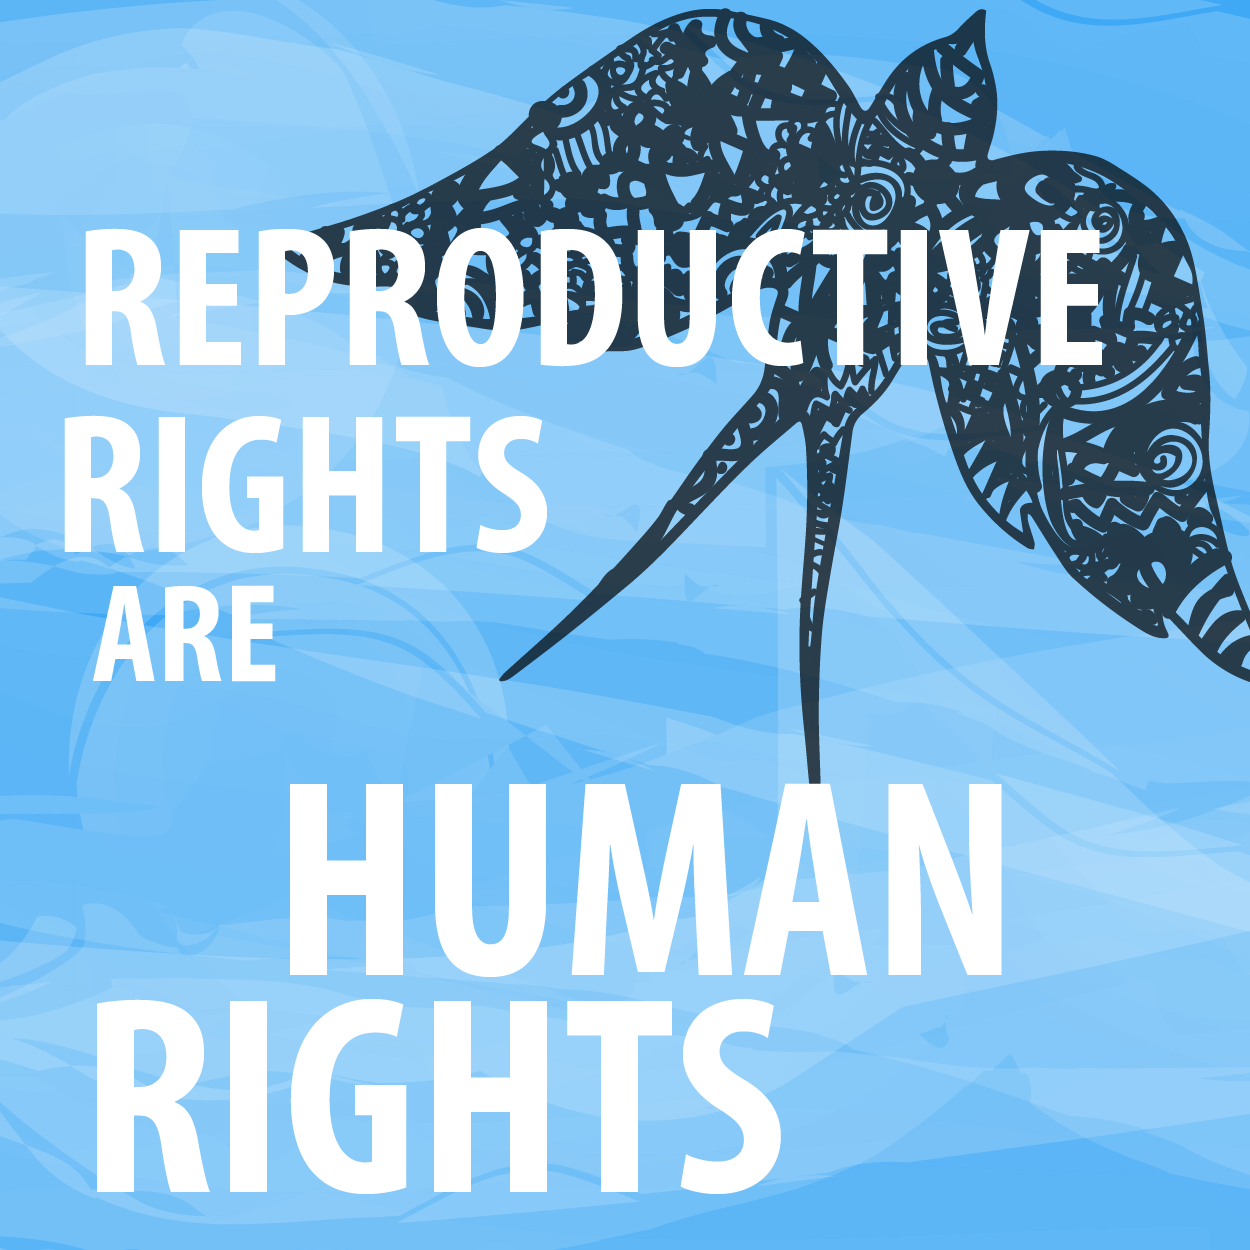 news website sexual reproductive health rights southern africa